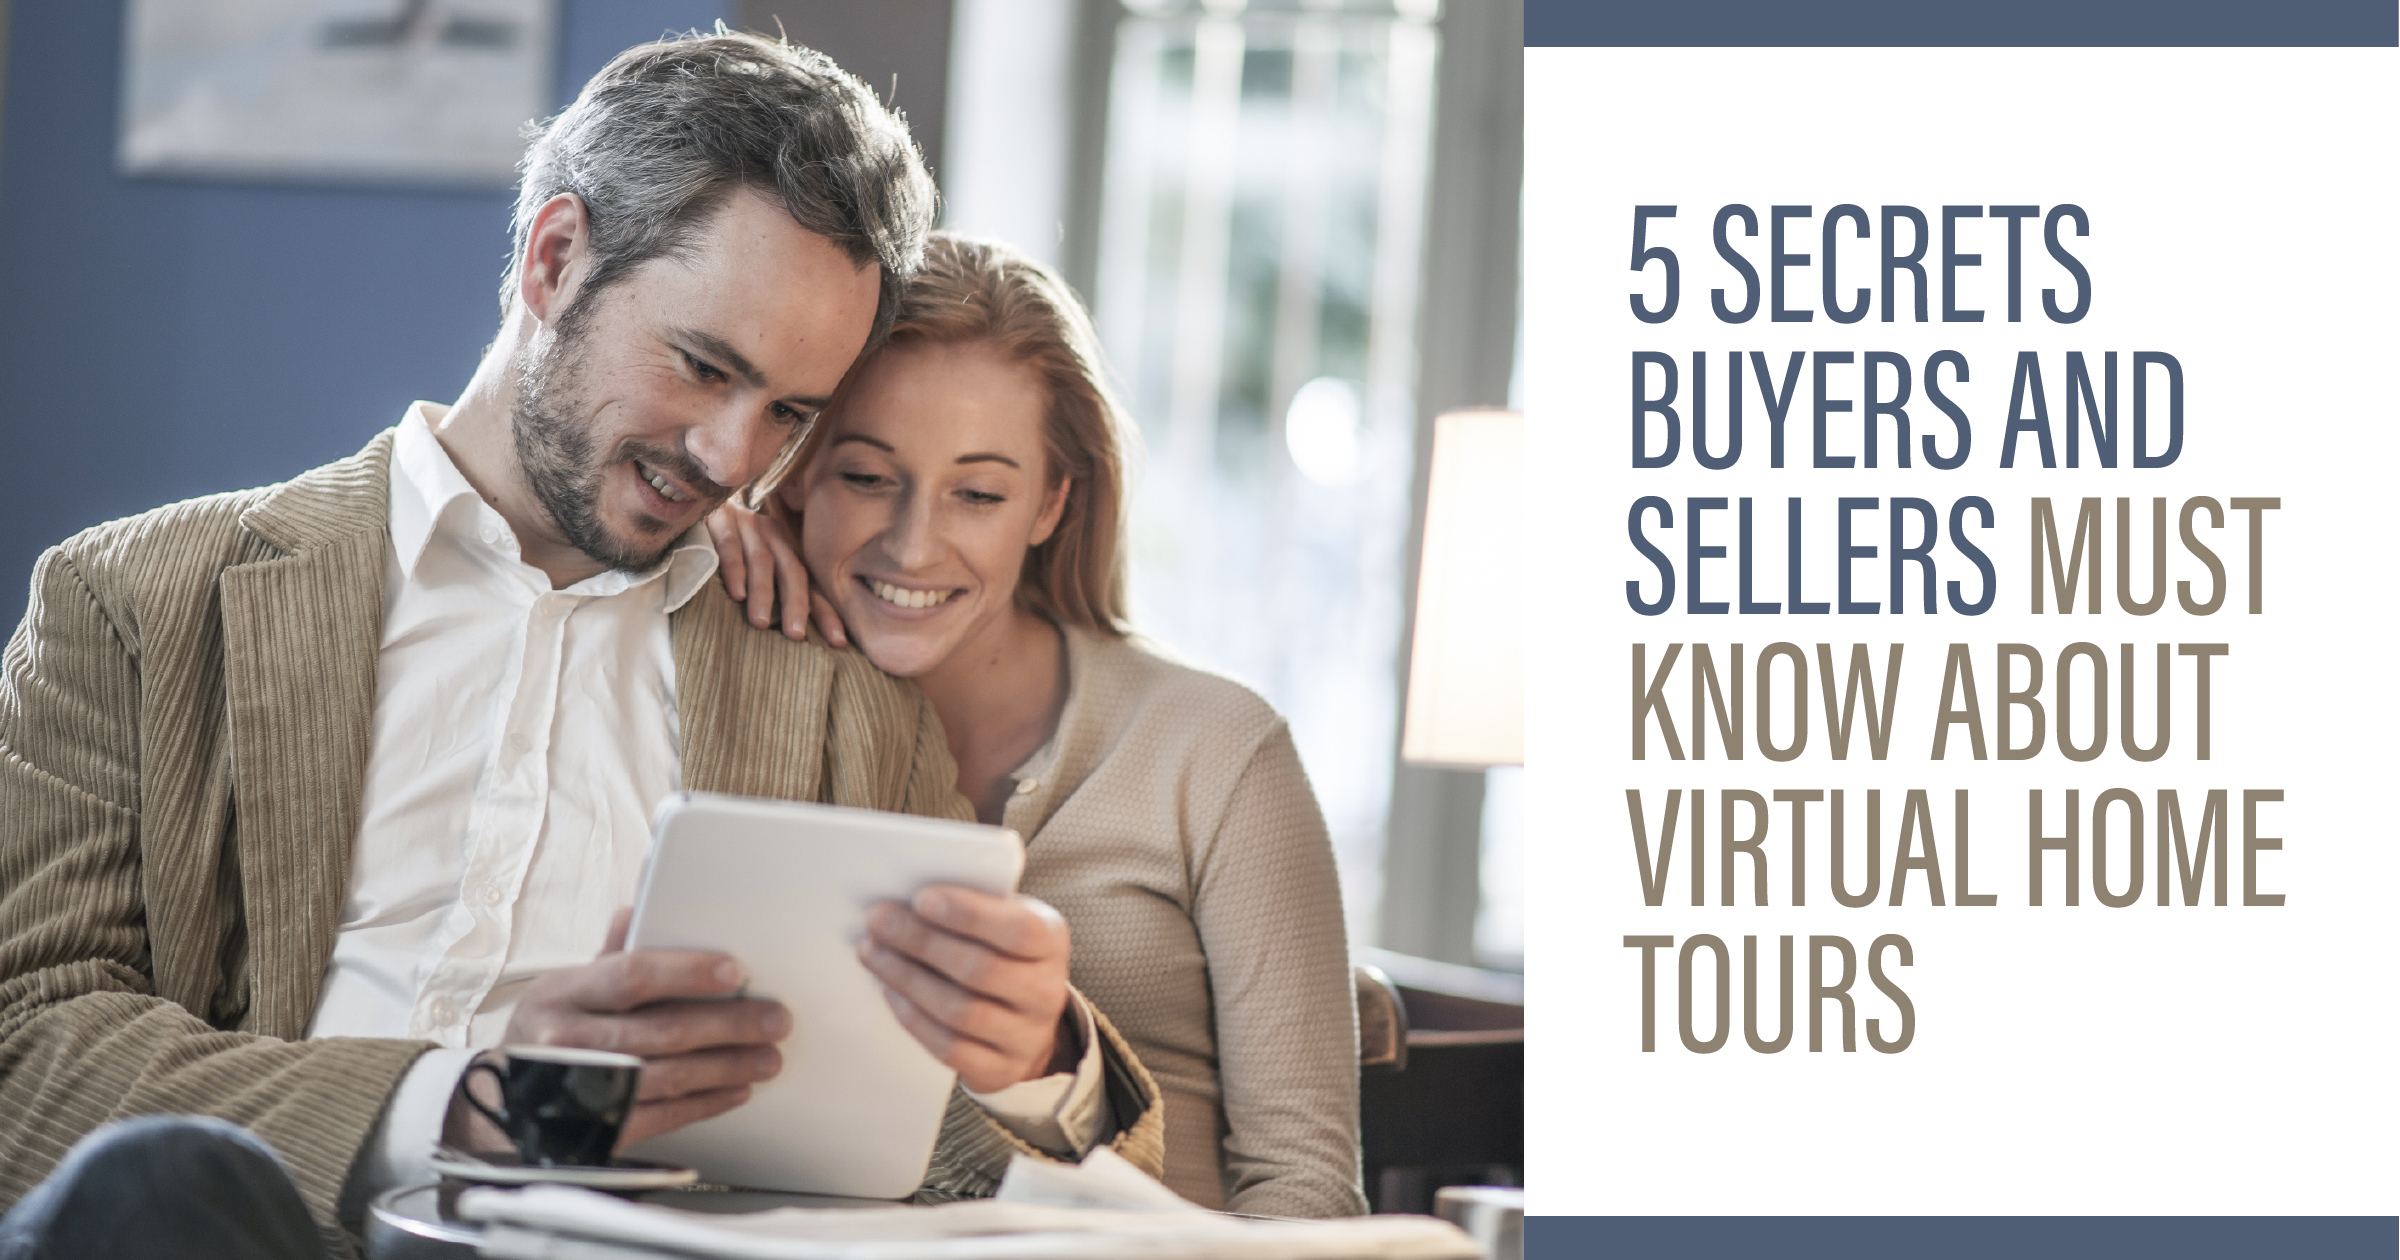 Reno Realty 5 Secrets Buyers and Sellers Must Know About Virtual Home Tours